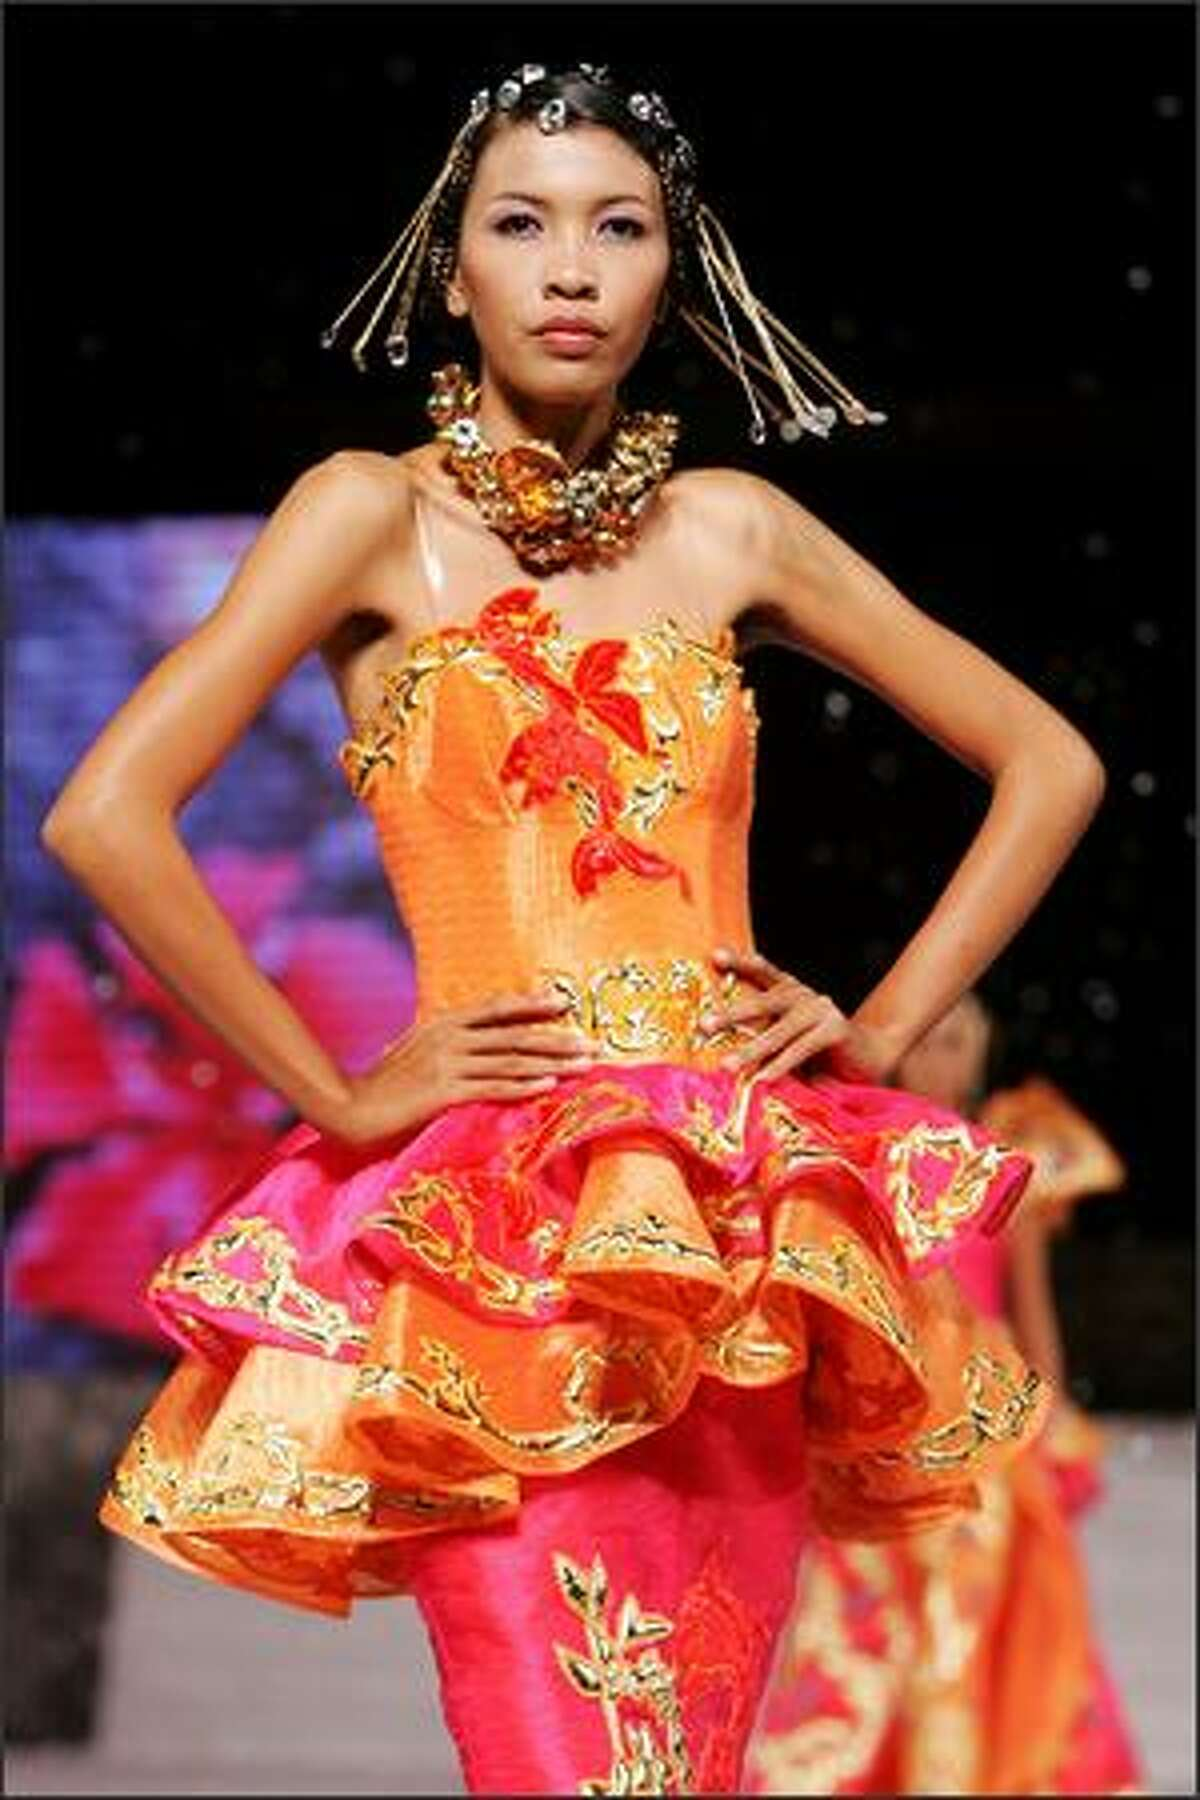 A model showcases designs by Korean couture designer Andre Kim at the opening catwalk show on the first day of Bali Fashion Week 2008 at the Lotus Pond, Garuda Wishnu Kencana on Monday in Jimbaran, Bali, Indonesia.